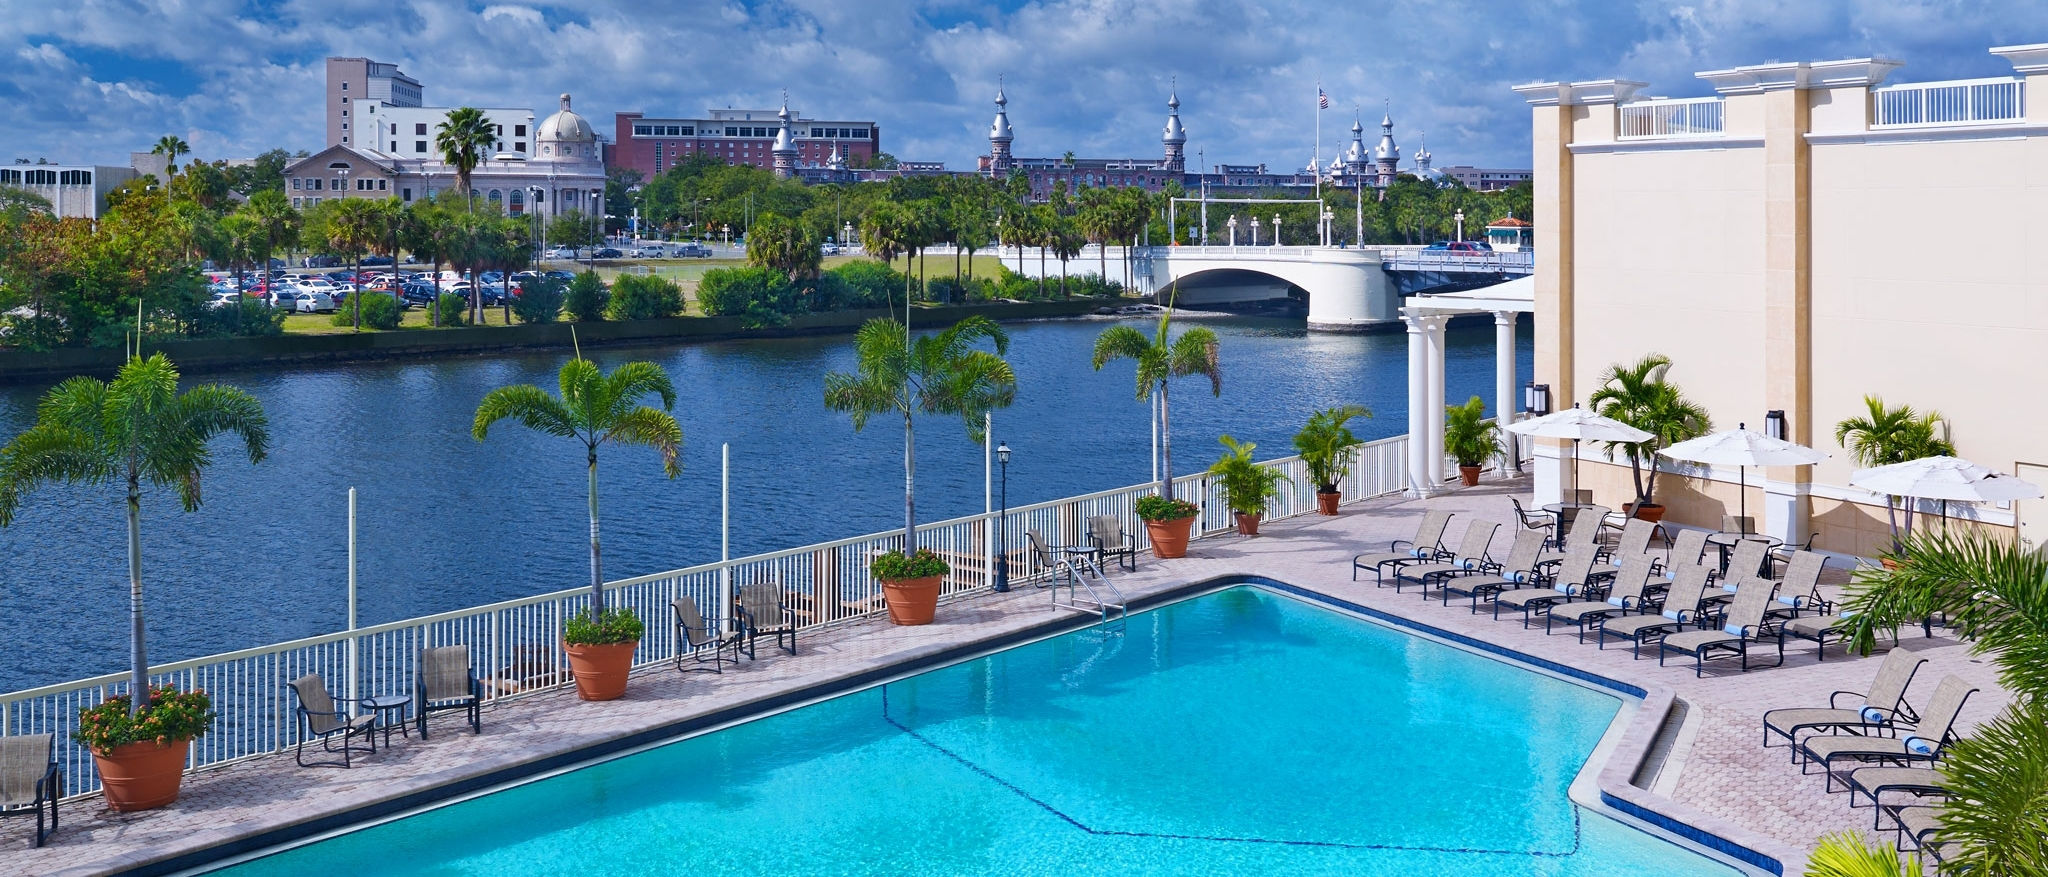 Sheraton Tampa Riverwalk - Outdoor Pool